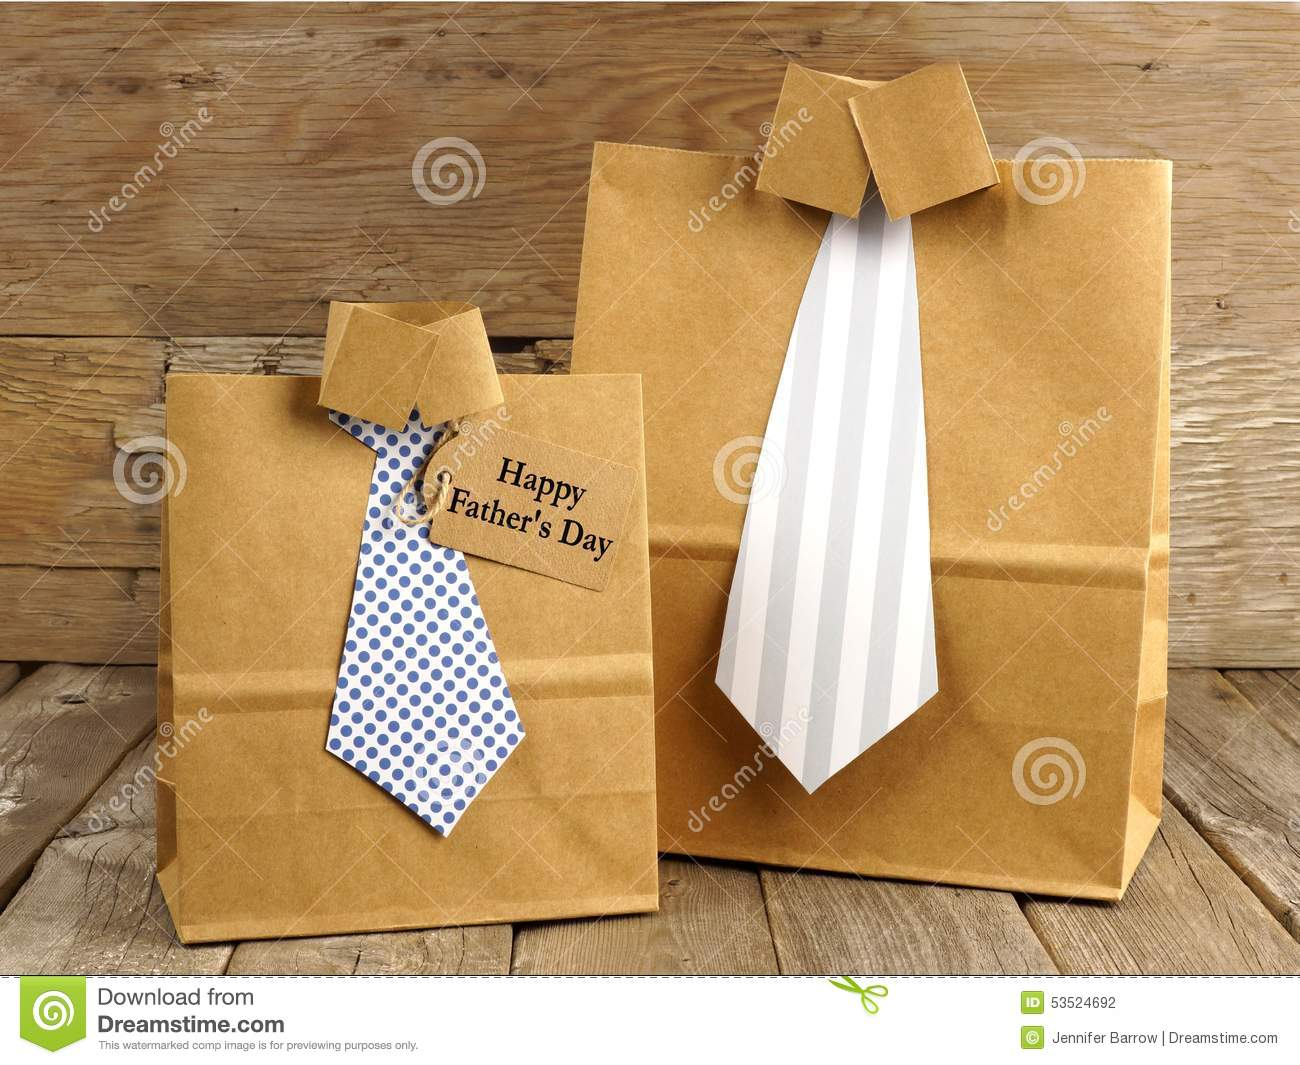 Fathers Day Shirt And Tie Gift Bags On A Wood Stock Photo